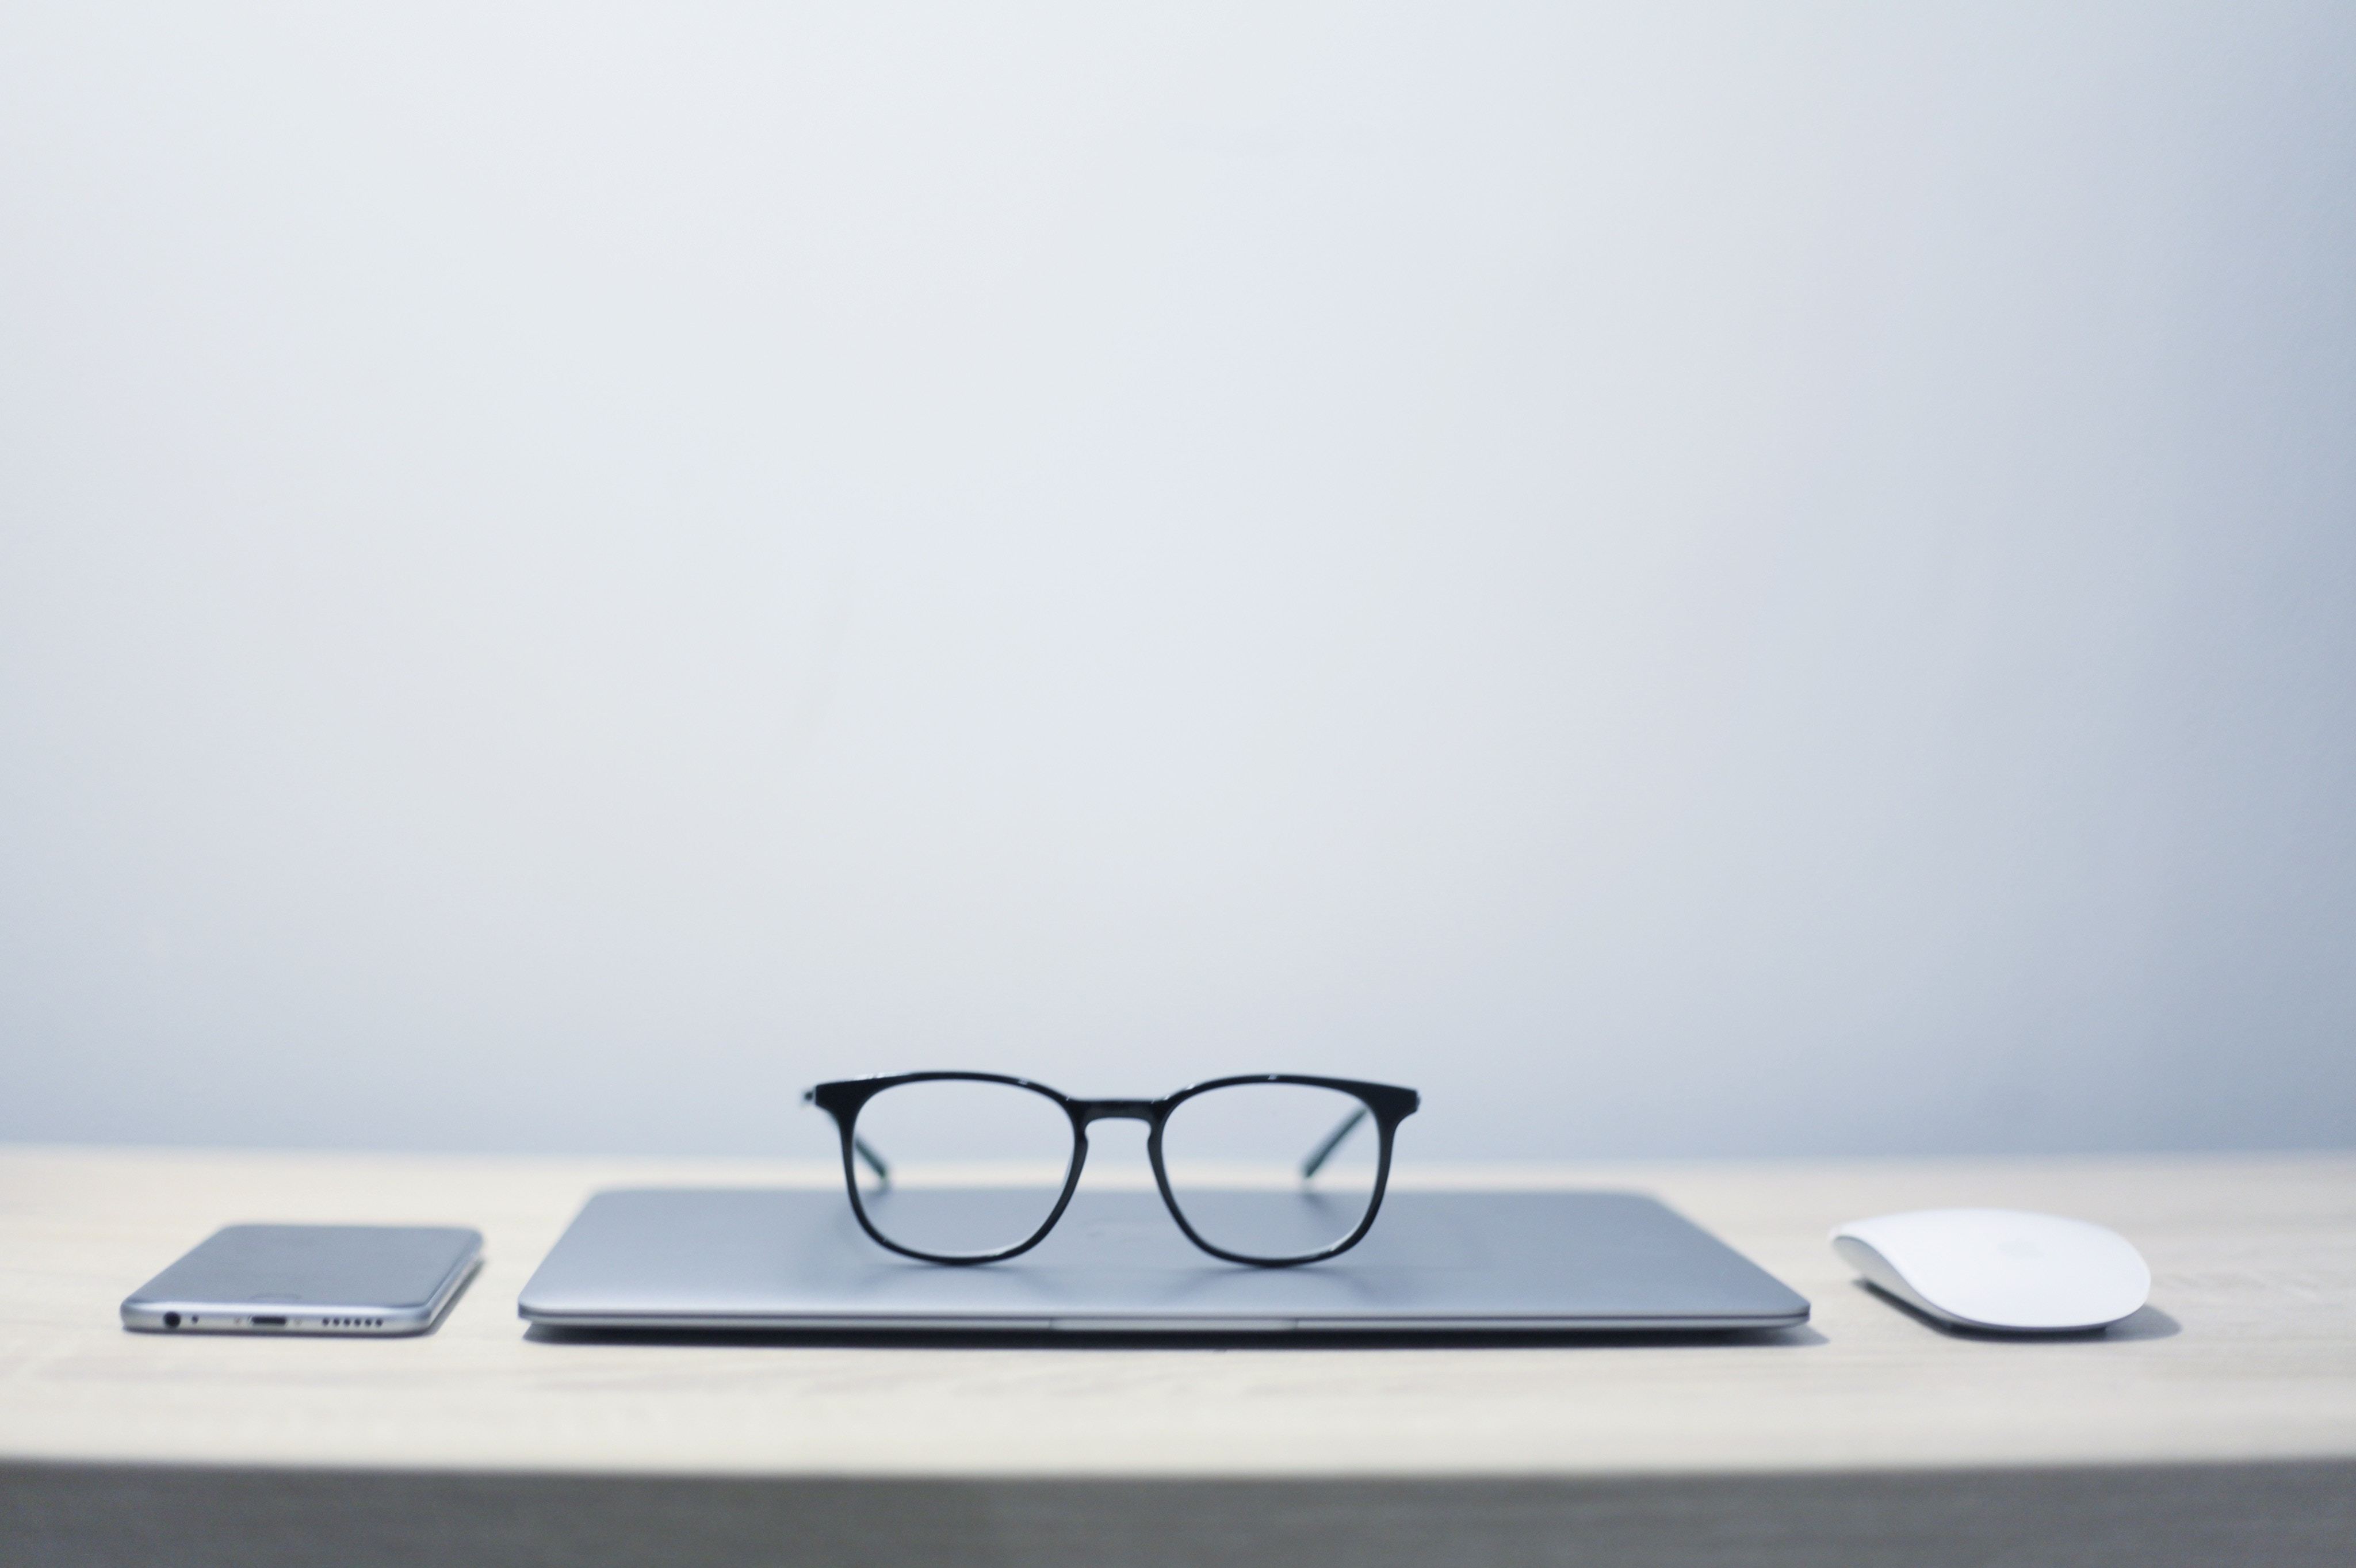 Trainer's glasses resting on training management software system